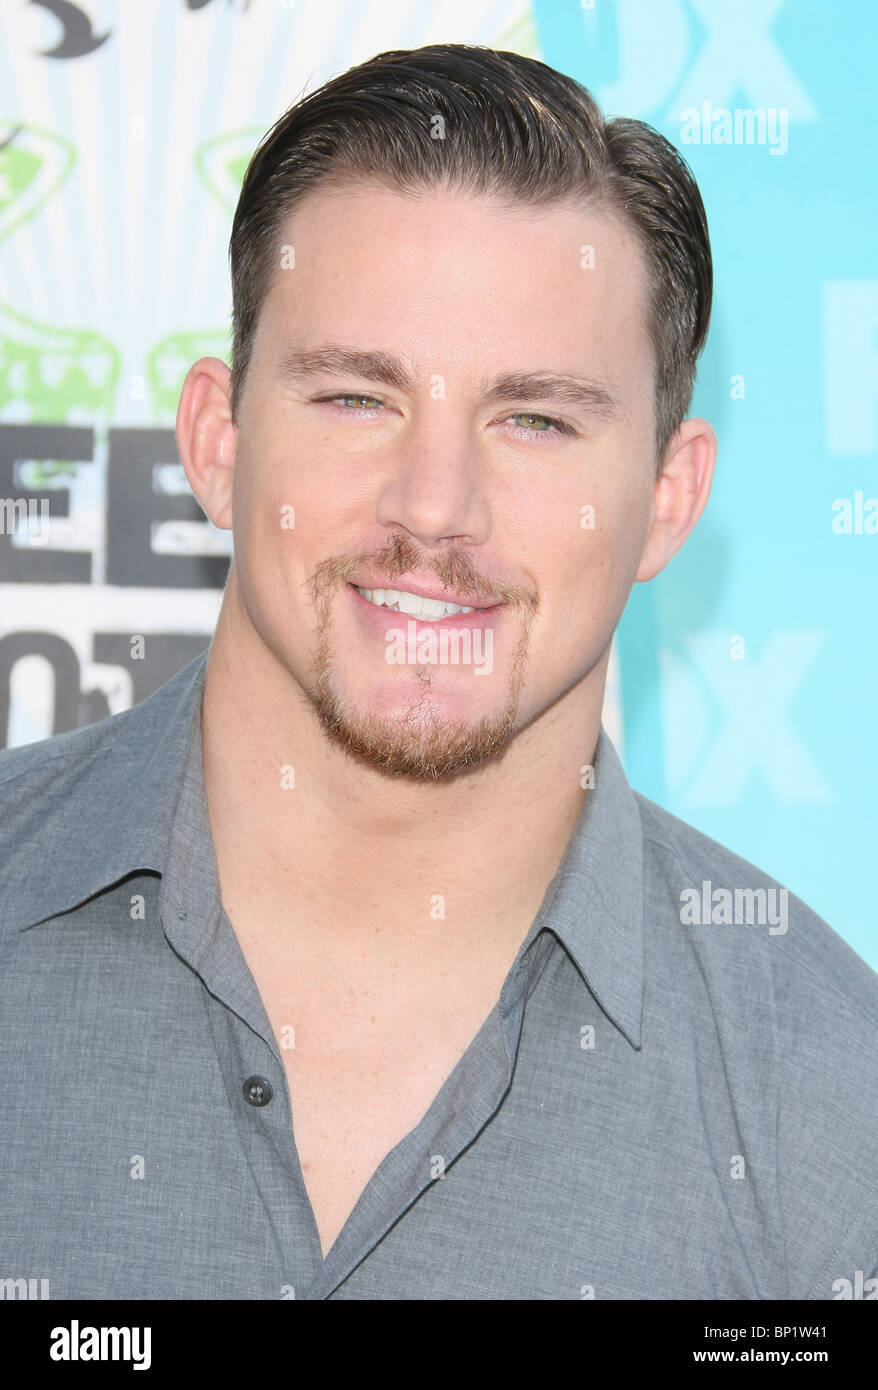 CHANNING TATUM TEEN CHOICE 2010 Ankünfte LOS ANGELES Kalifornien USA 08 August 2010 Stockbild